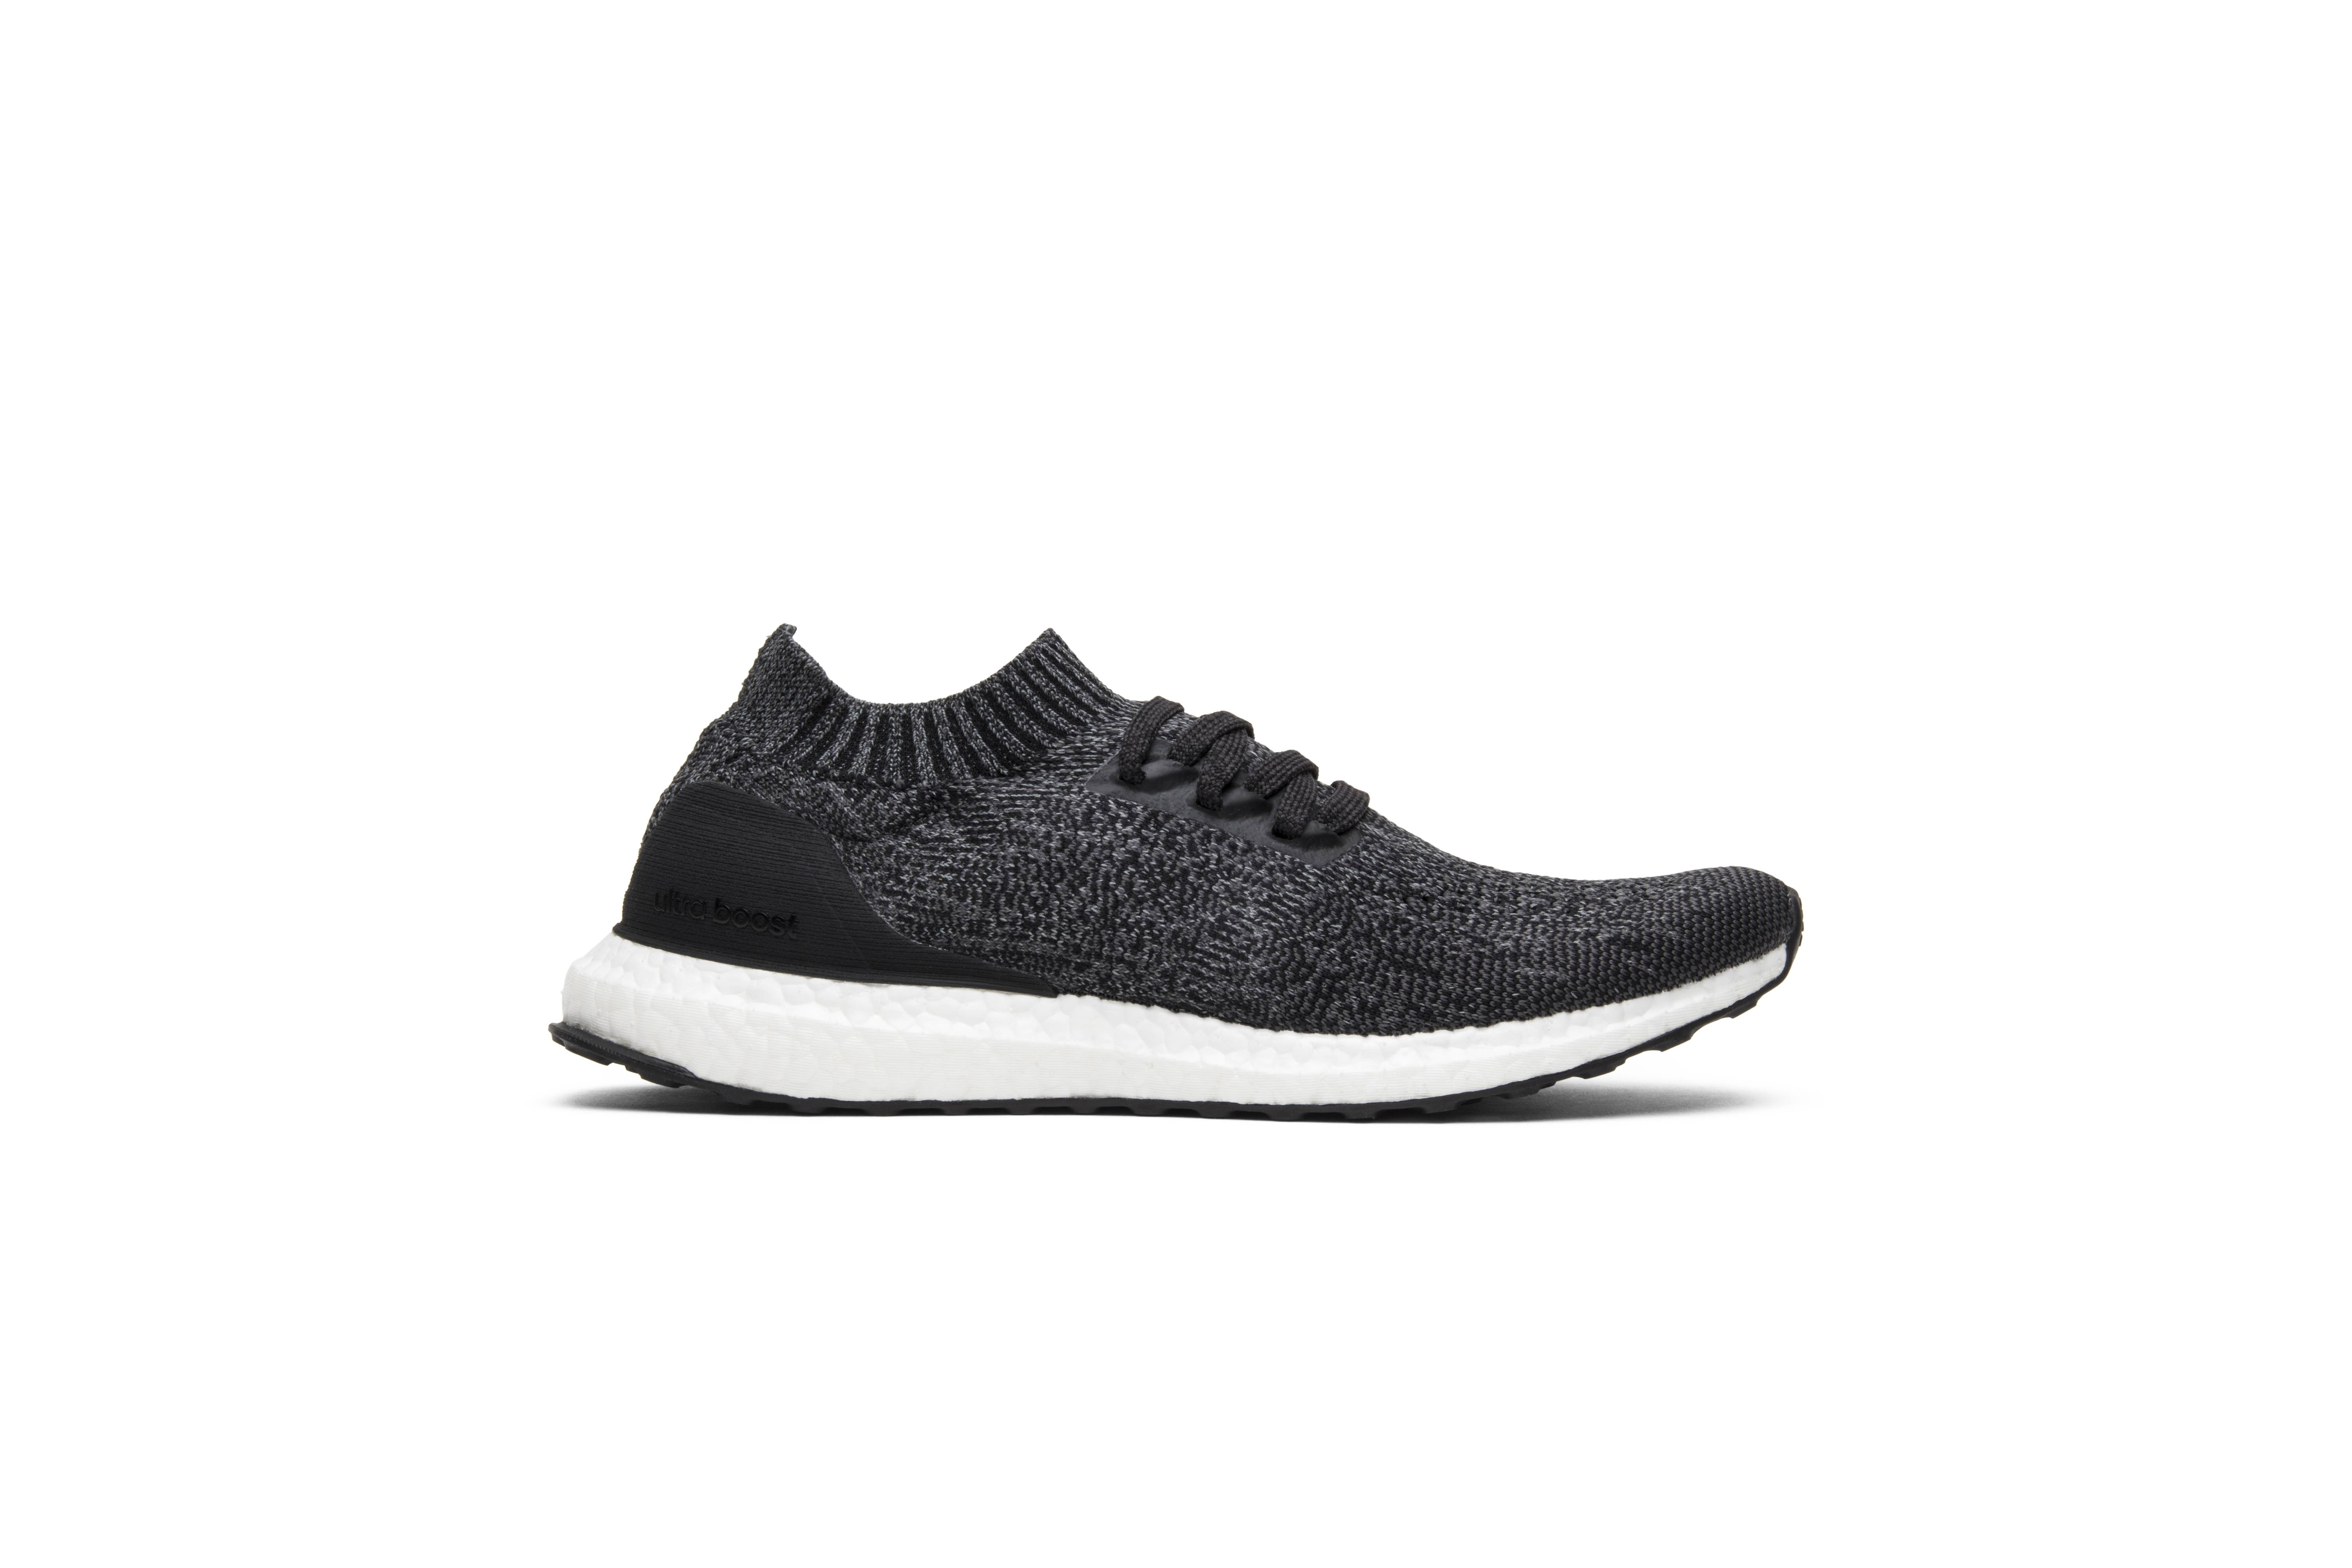 13161858be2 ... UltraBoost Uncaged Dark Burgundy - adidas - BY2552 ...